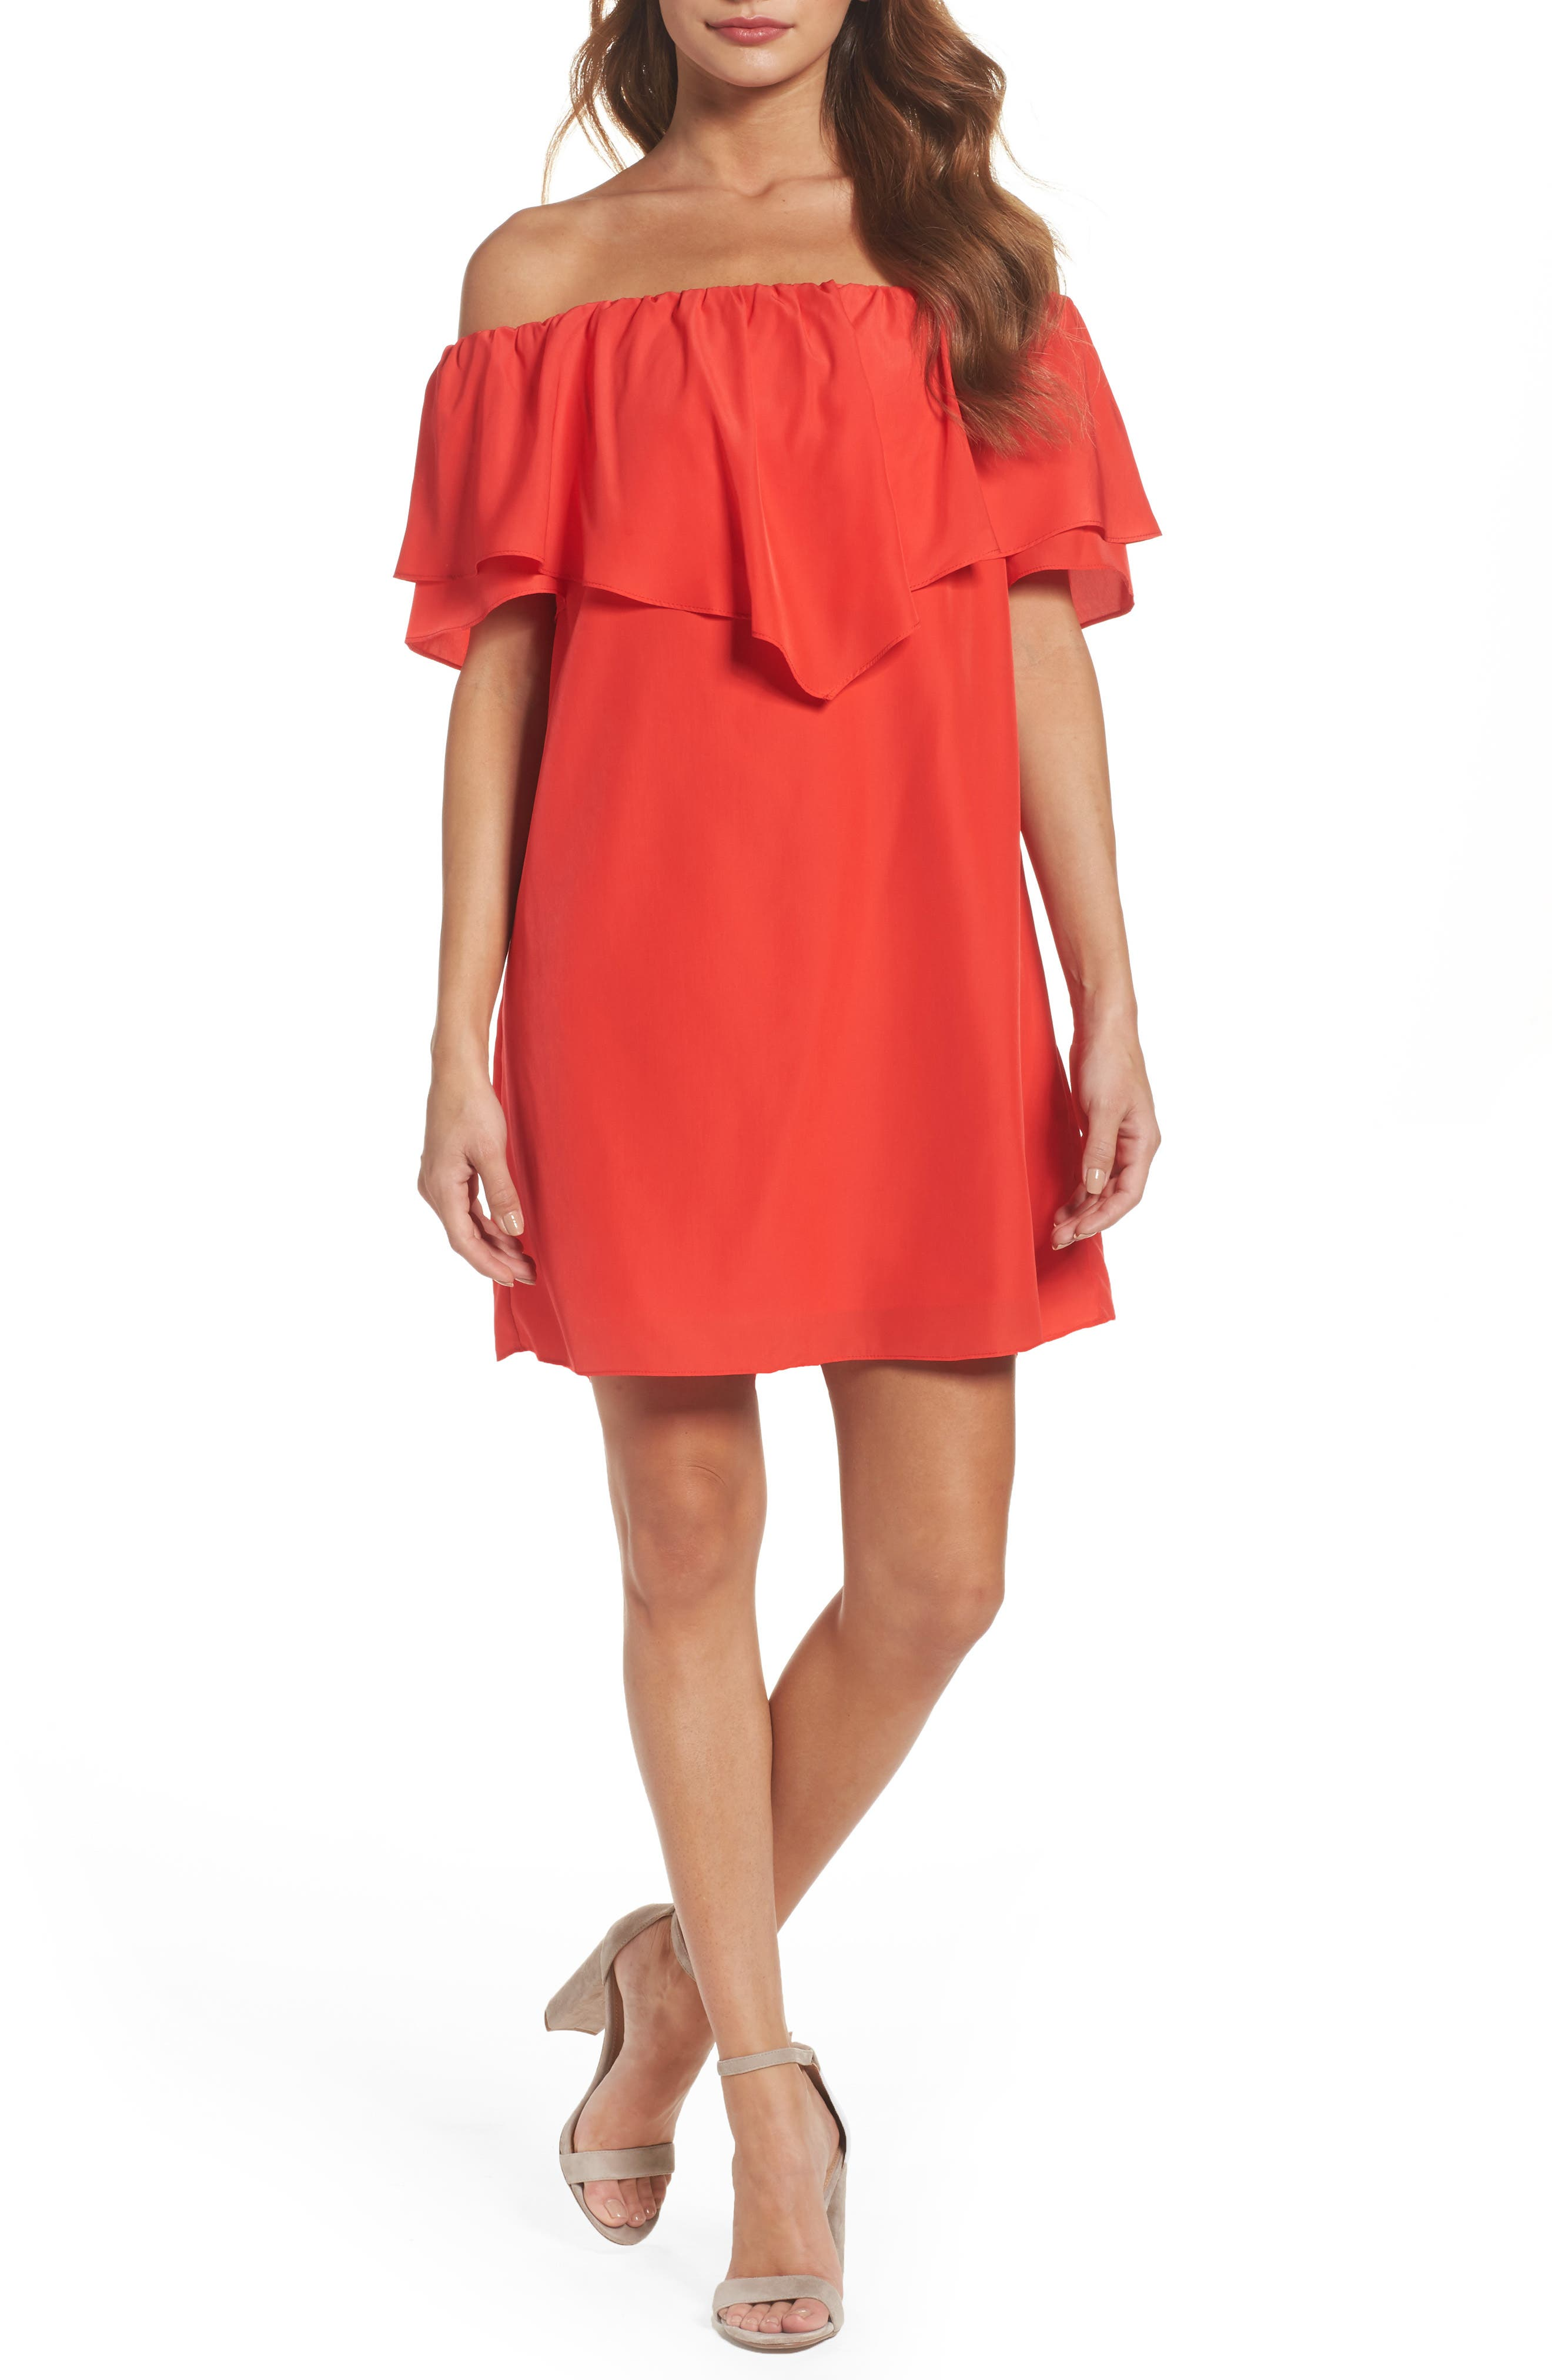 A by Amanda Birch Shift Dress